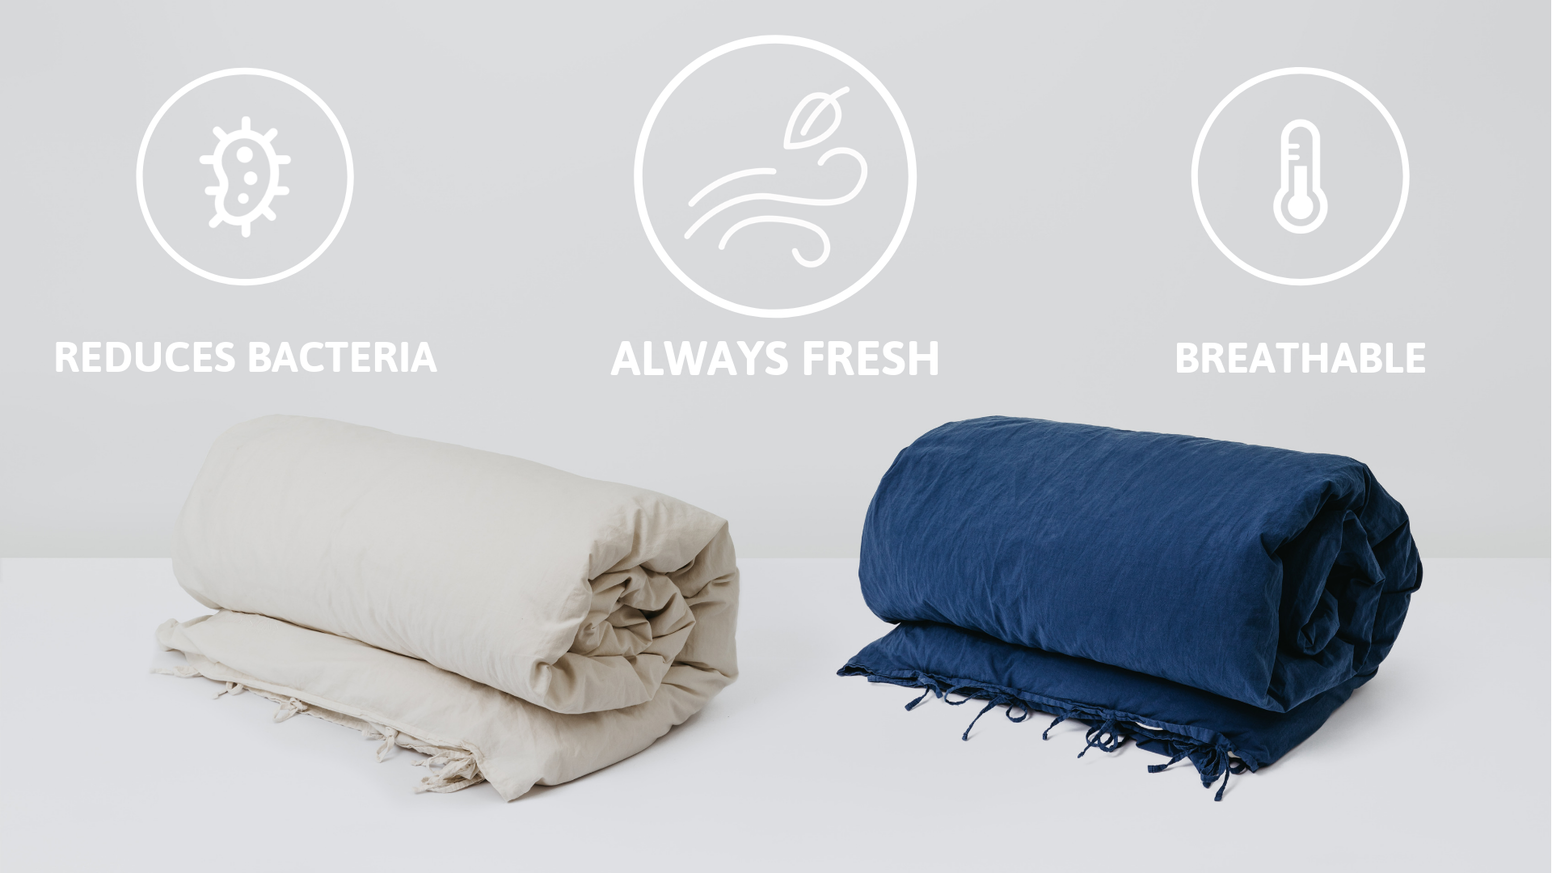 Funded in 72 hours!Dawn Nights is treated with recycled silver chloride which makes the bed linen stay fresh for longer